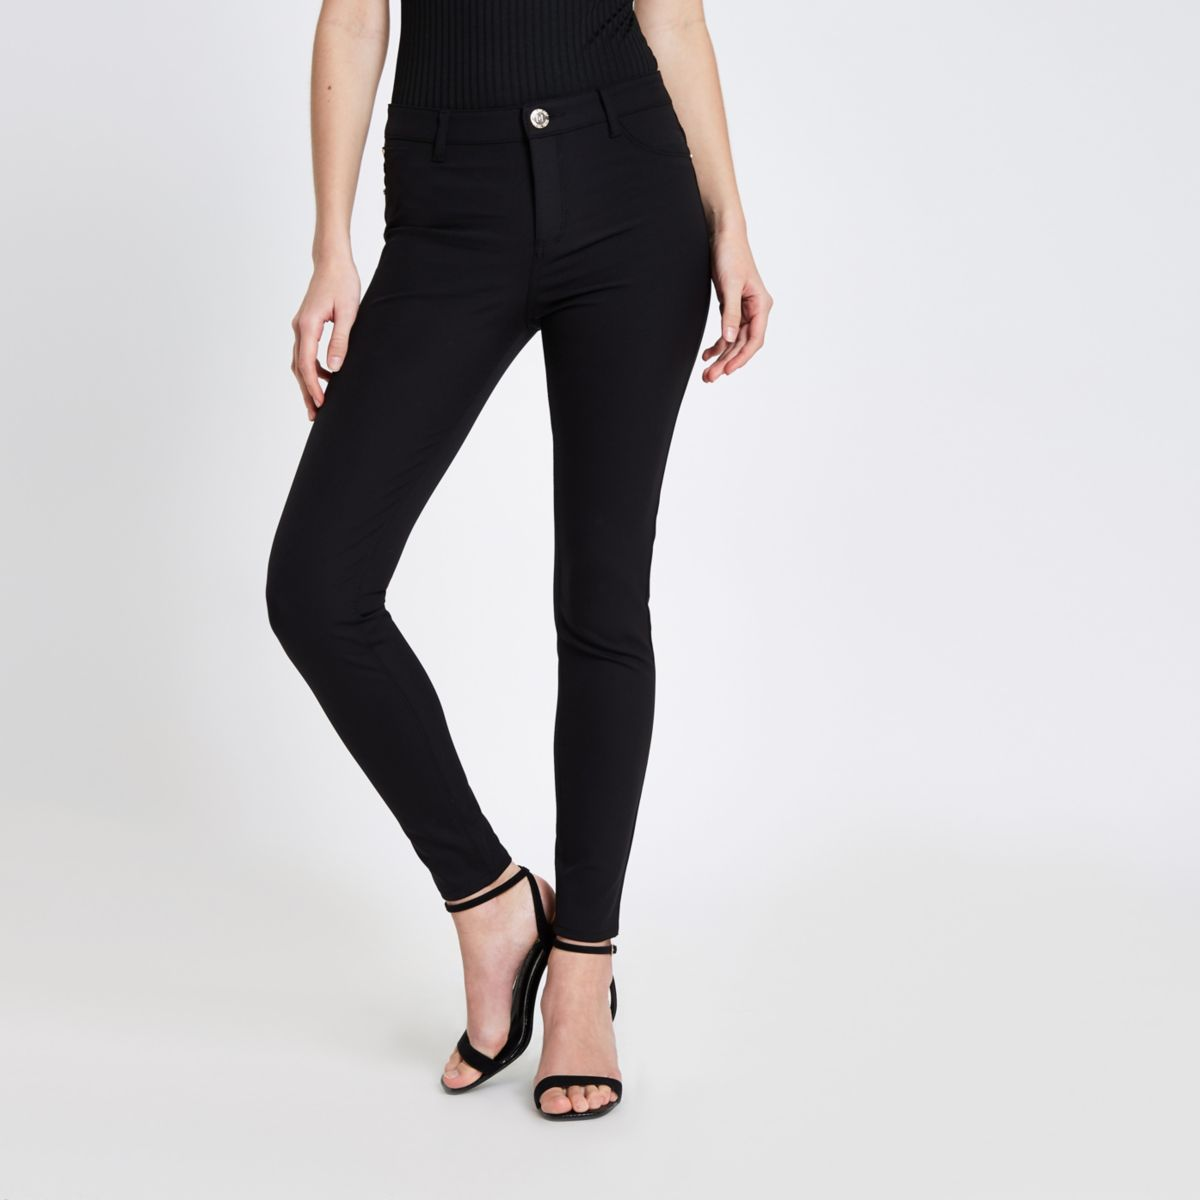 Find black skinny leg pants at ShopStyle. Shop the latest collection of black skinny leg pants from the most popular stores - all in one place.